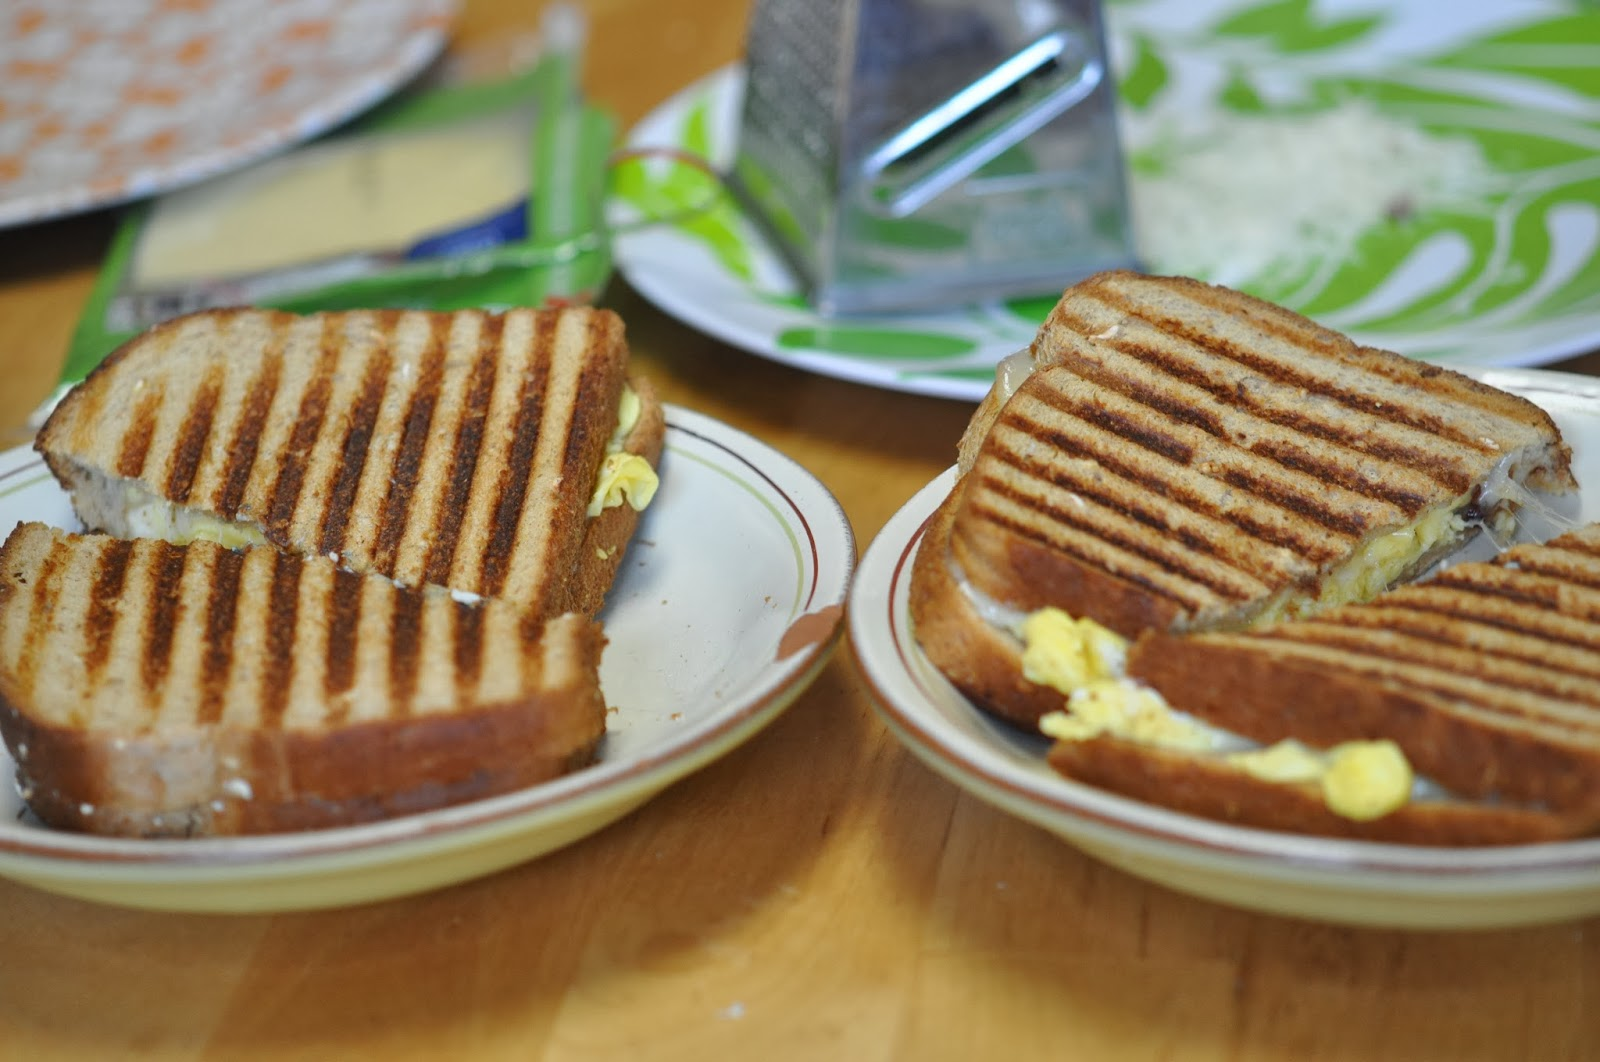 paninis at home, portland blogger, portland blogs